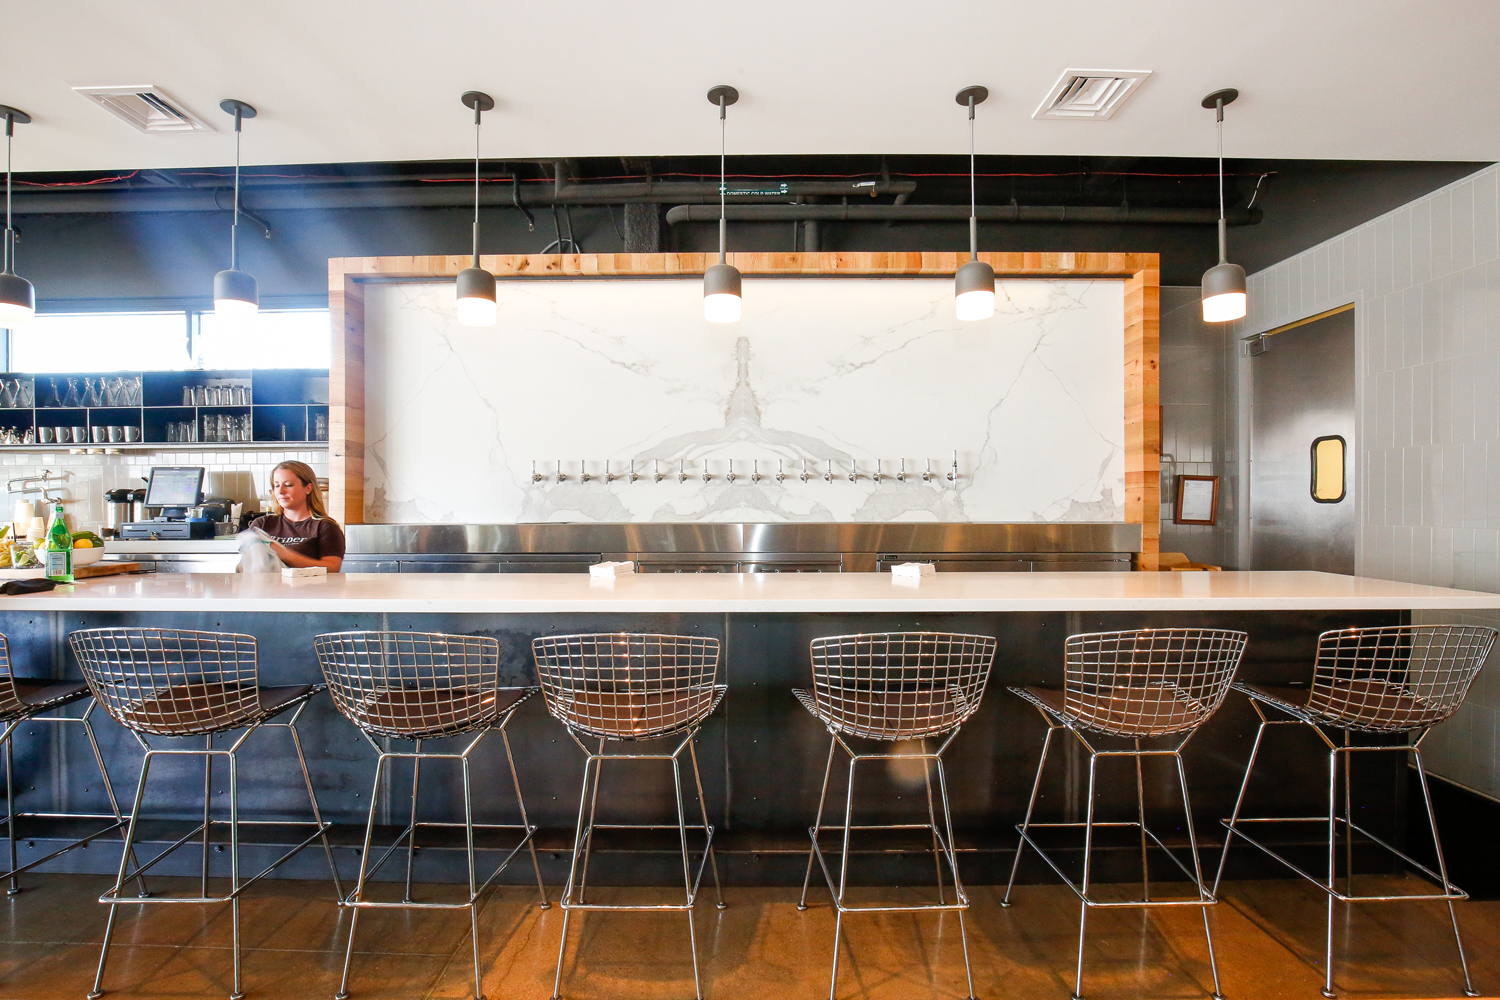 Denvers Fast Casual Rotisserie Restaurant Brider Boasts Design By Award Winning Architects Arch11 And Menu Chef Steven Redzikowski